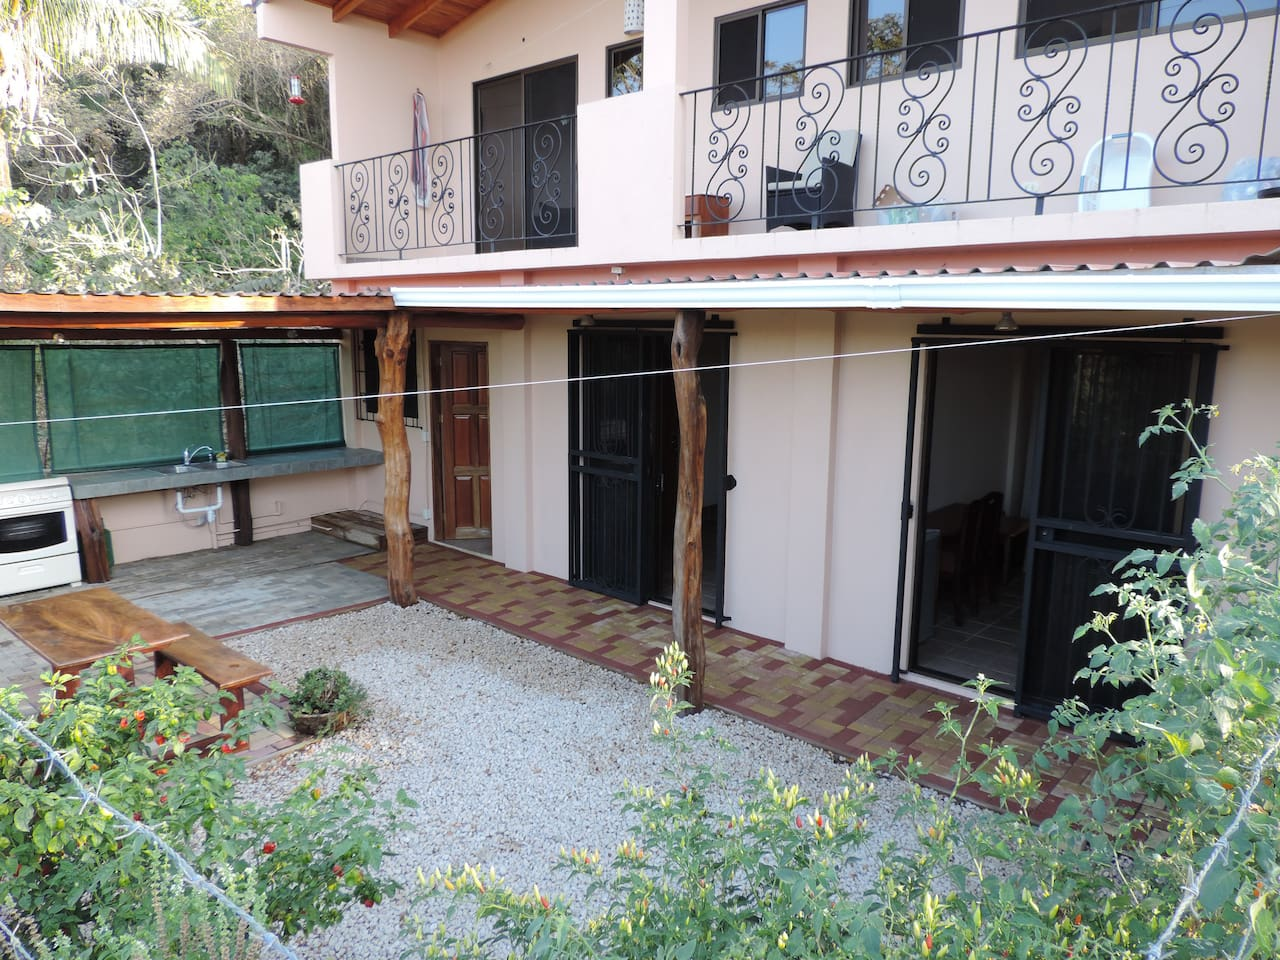 2-195 square foot (18 square meters) apartments with separate baths share this Courtyard and outdoor Kitchen.